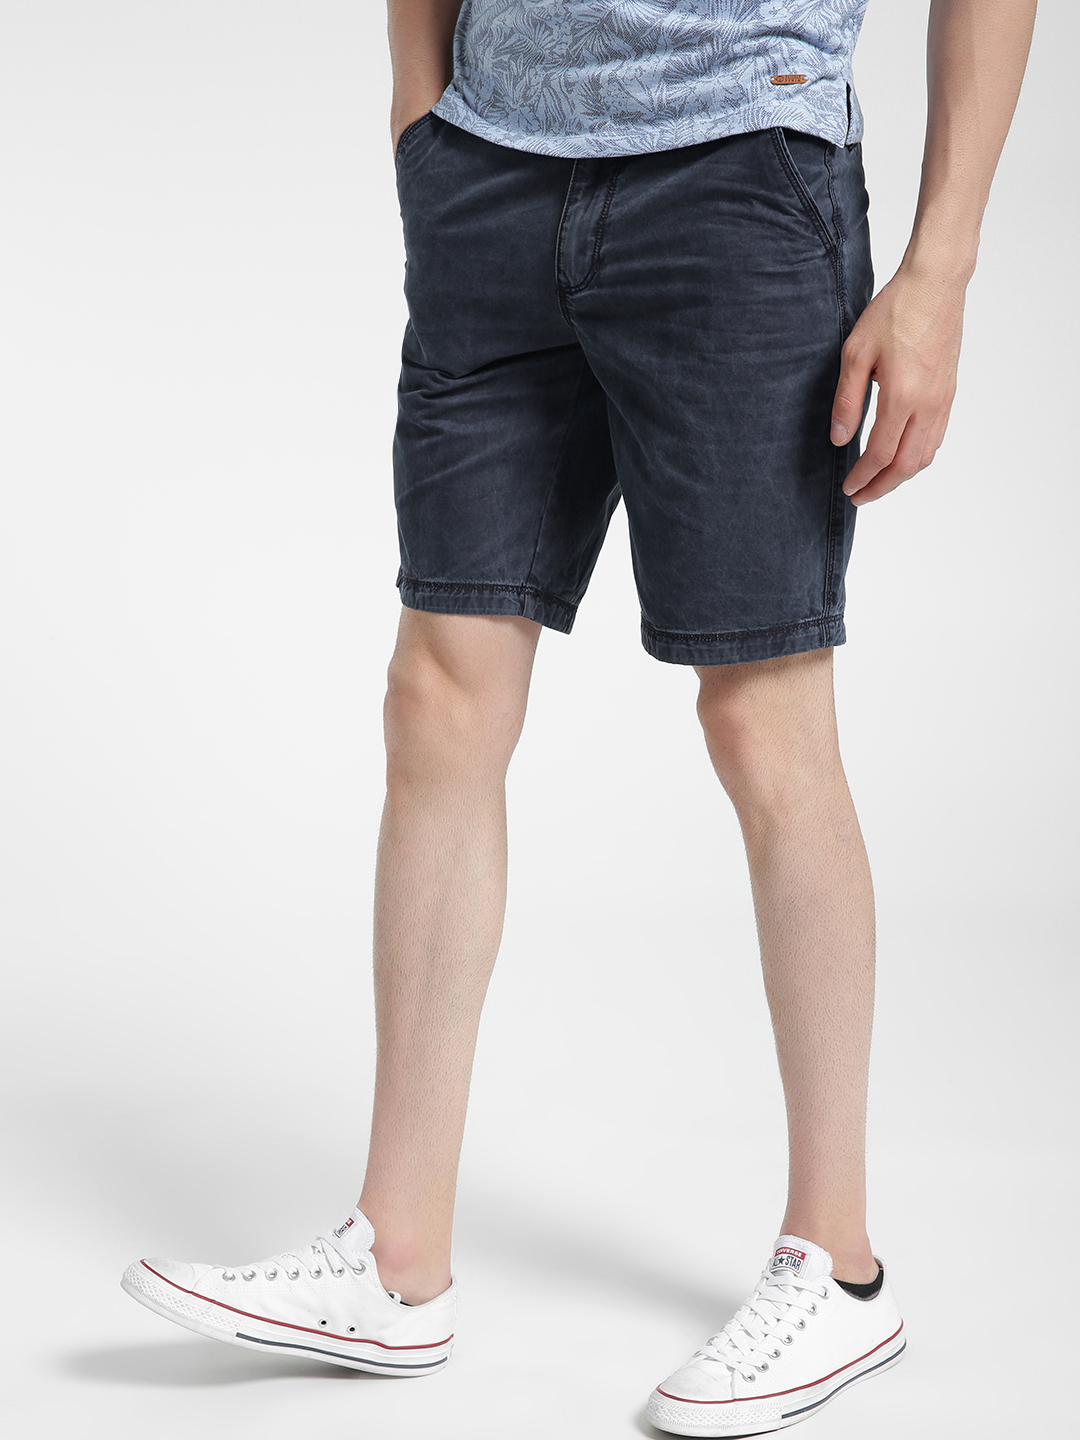 Buffalo Navy Acid Wash Shorts 1